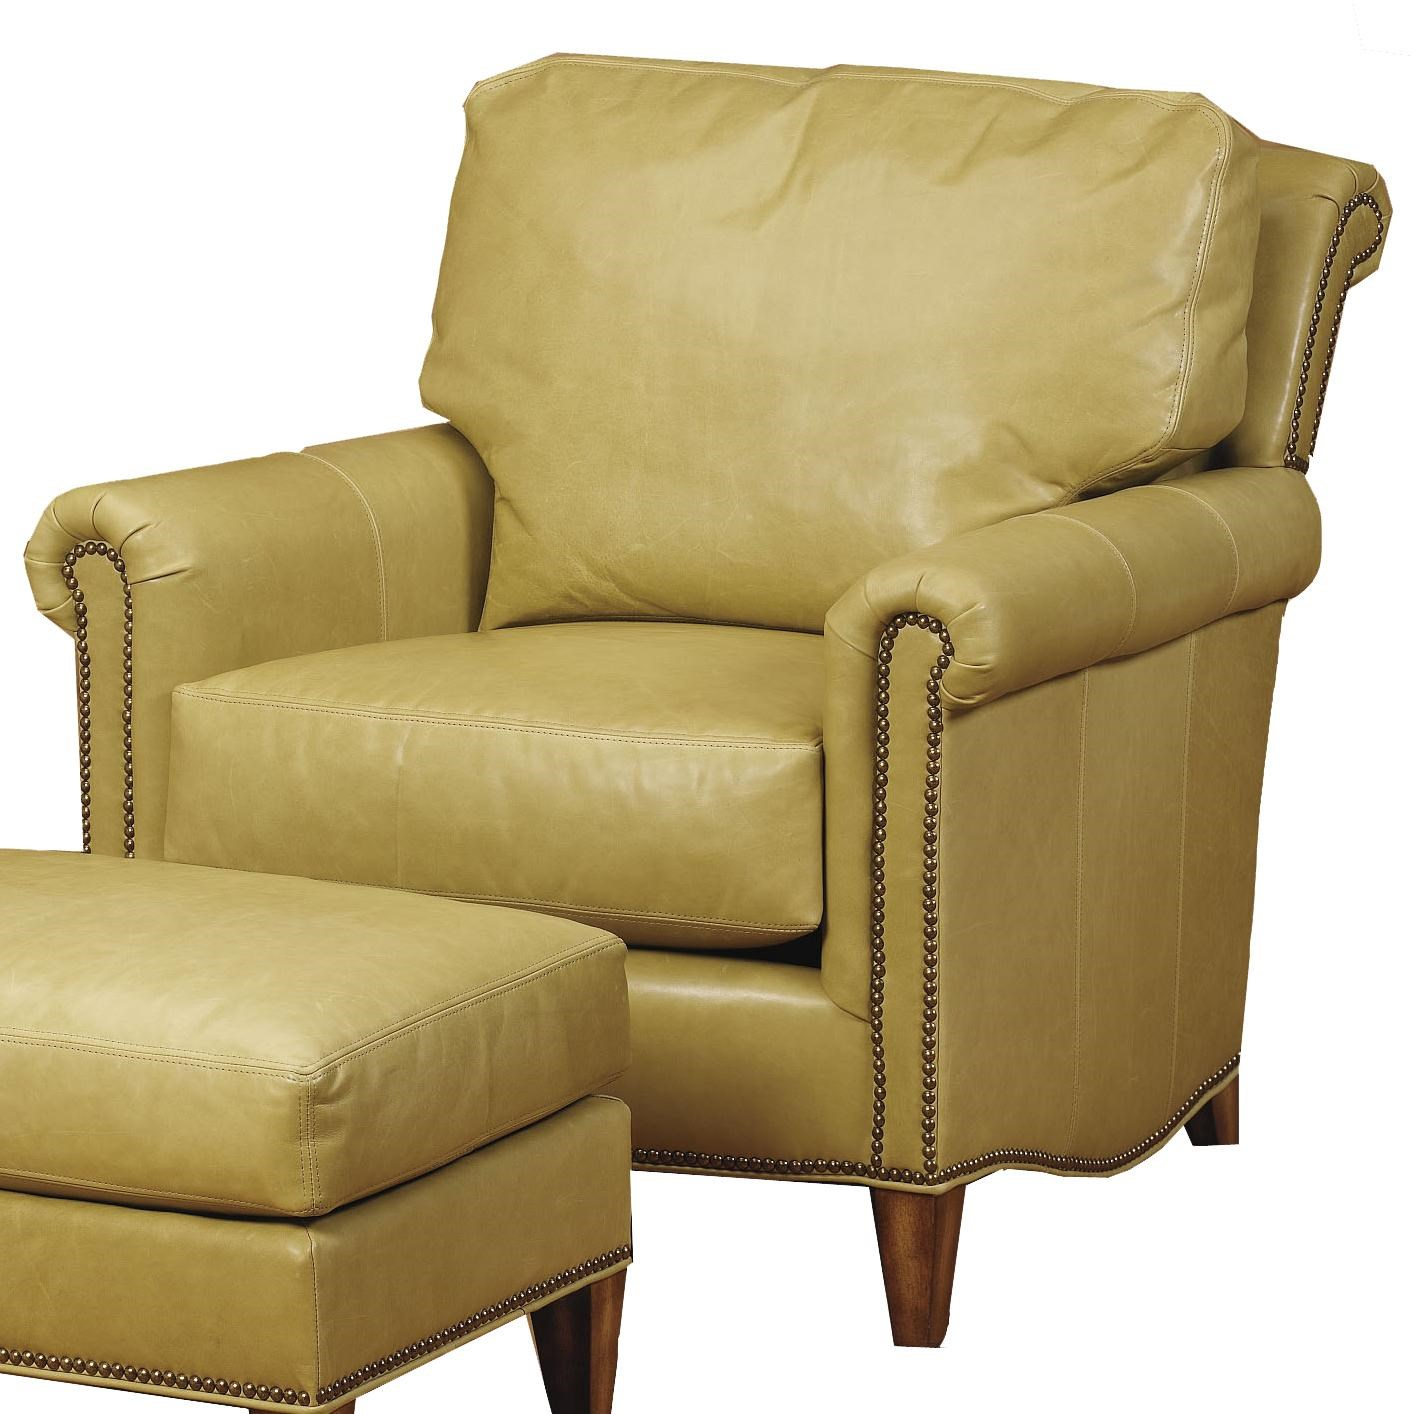 Wesley Hall Accent Chairs And Ottomans Traditional Upholstered Chair